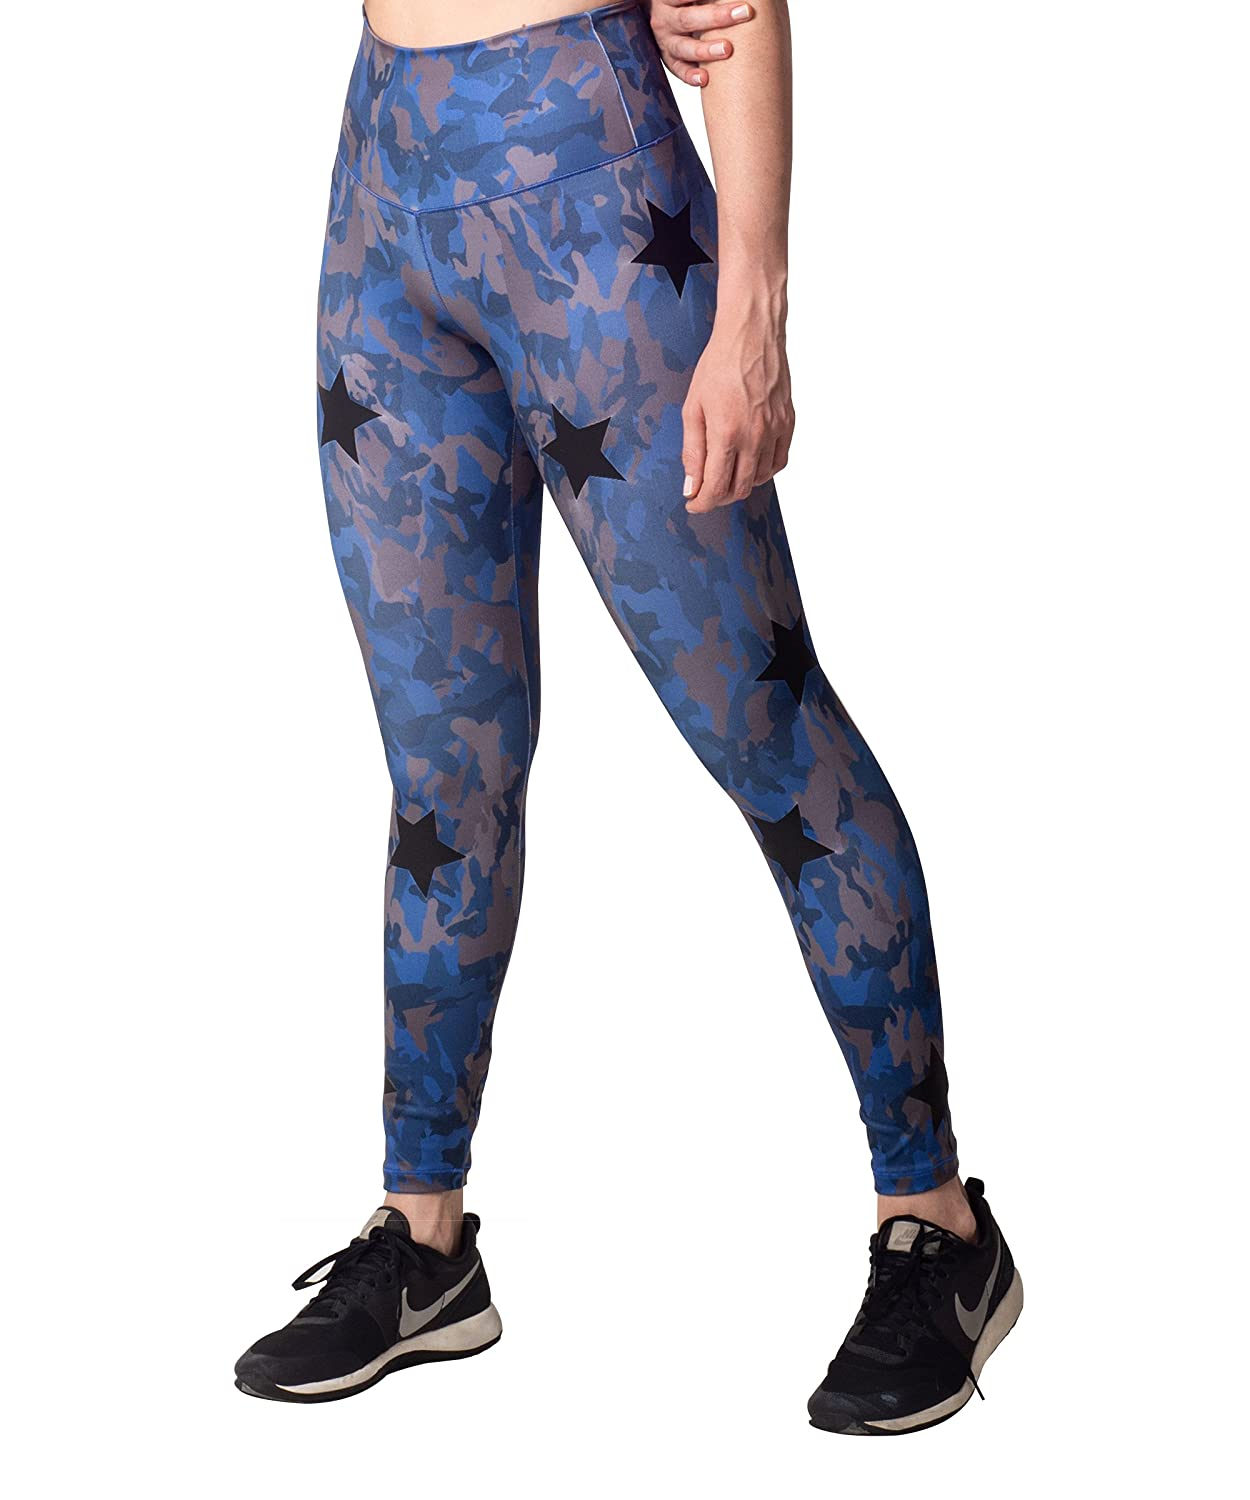 Activefit Mix Stars Camouflage Stretch High Waisted Workout Yoga Pants Leggings for Women